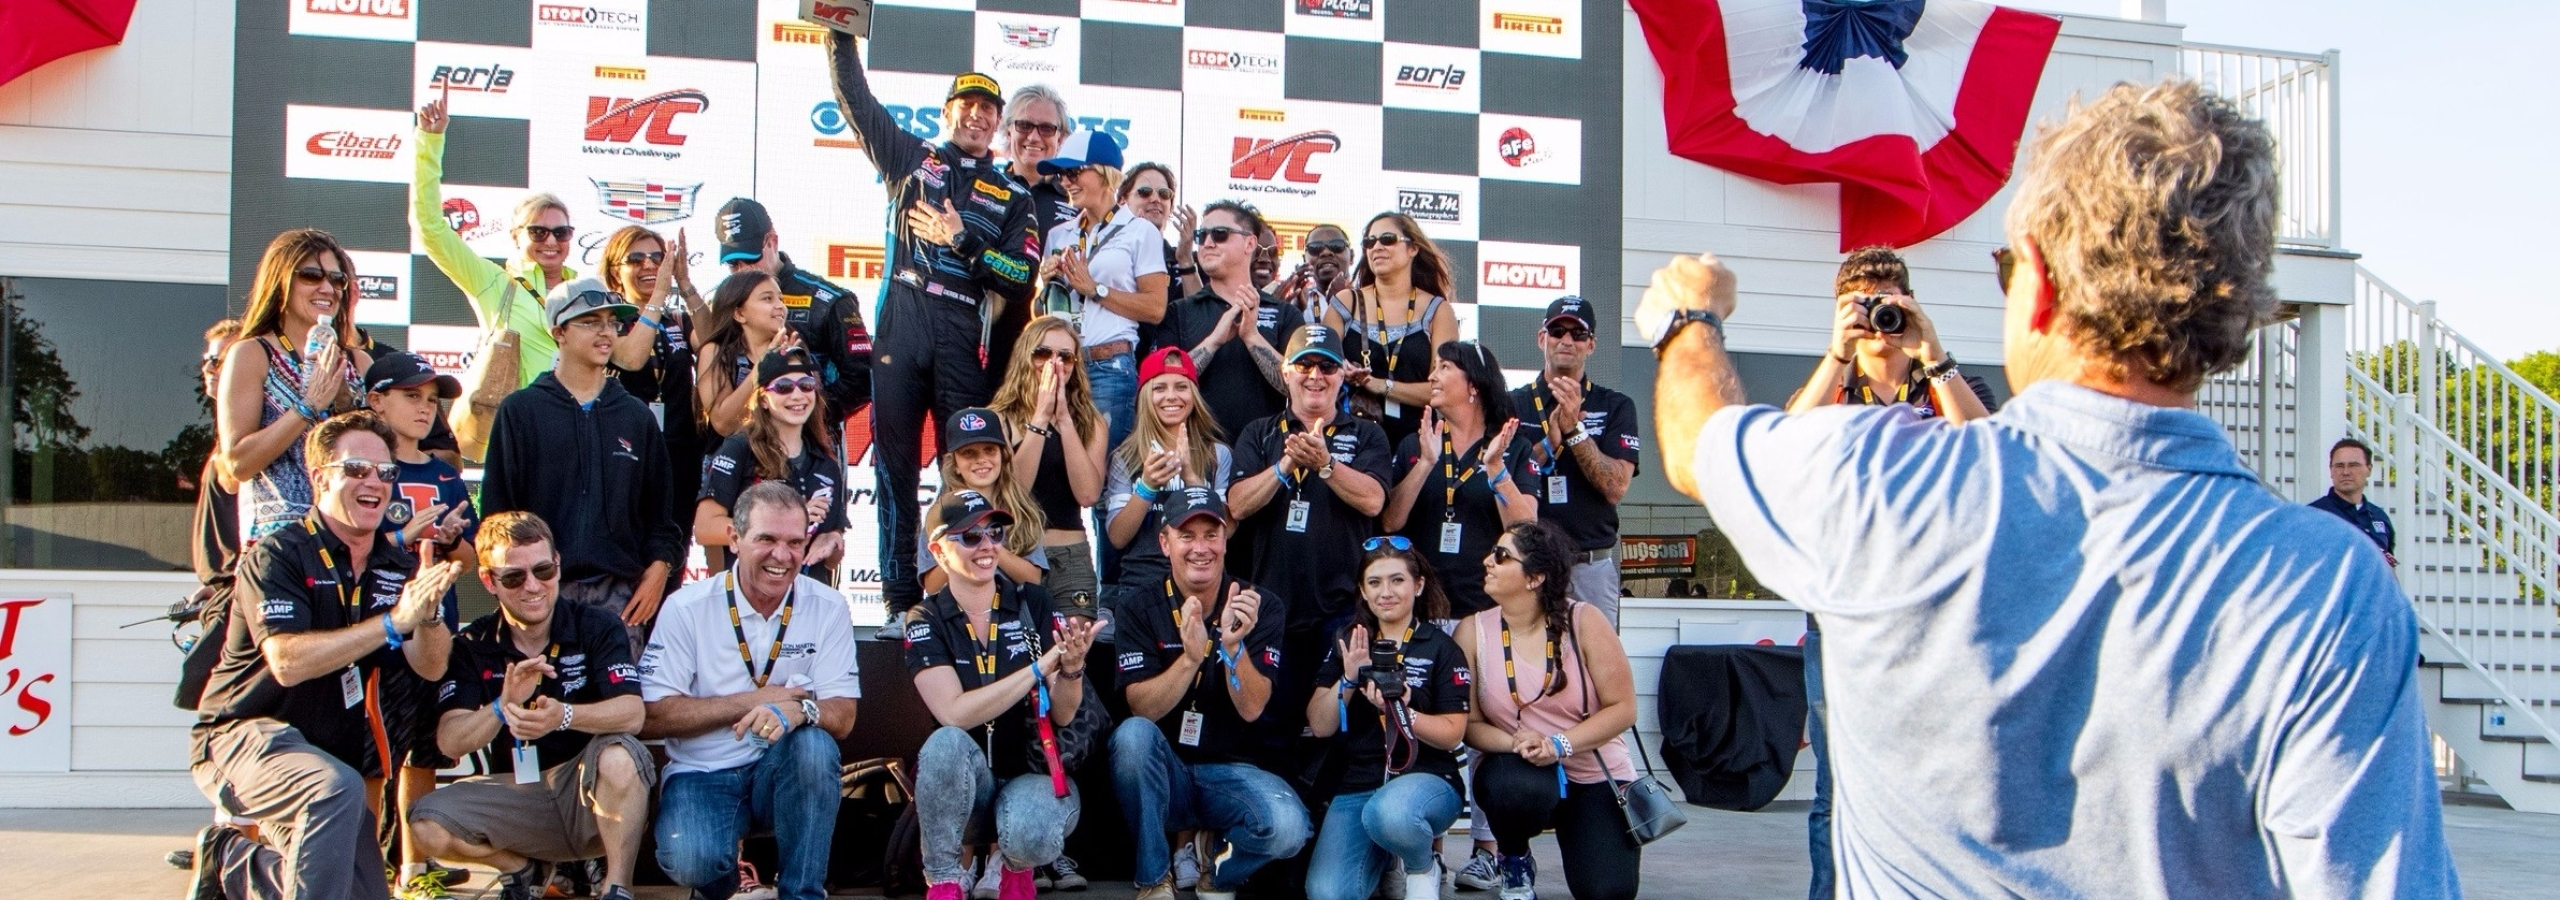 TRG-AMR Wins at Road America